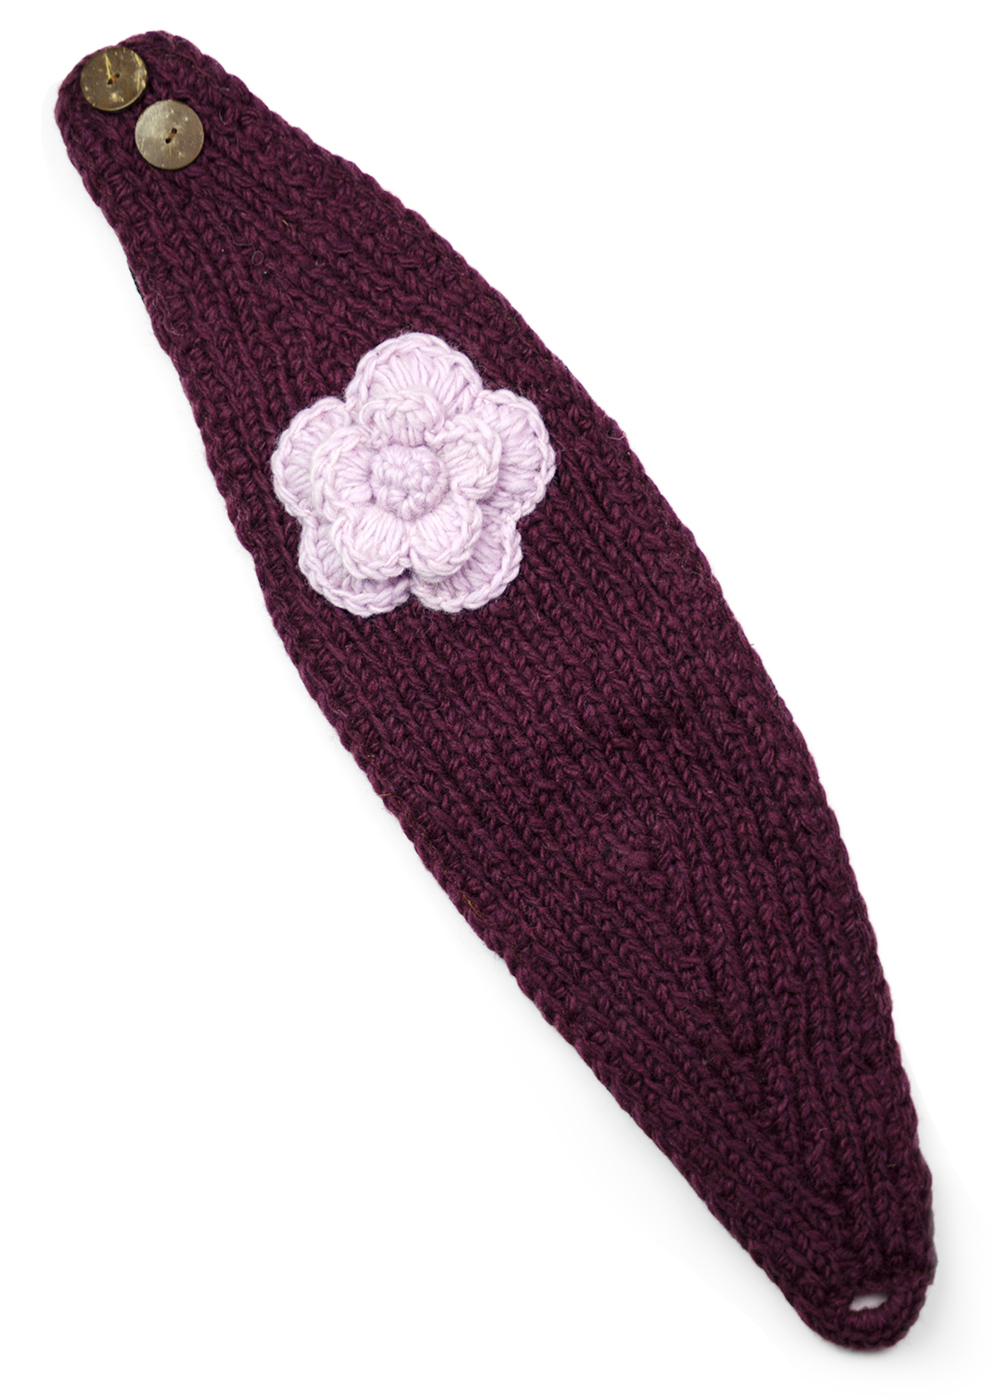 Wool Flowery Headbands